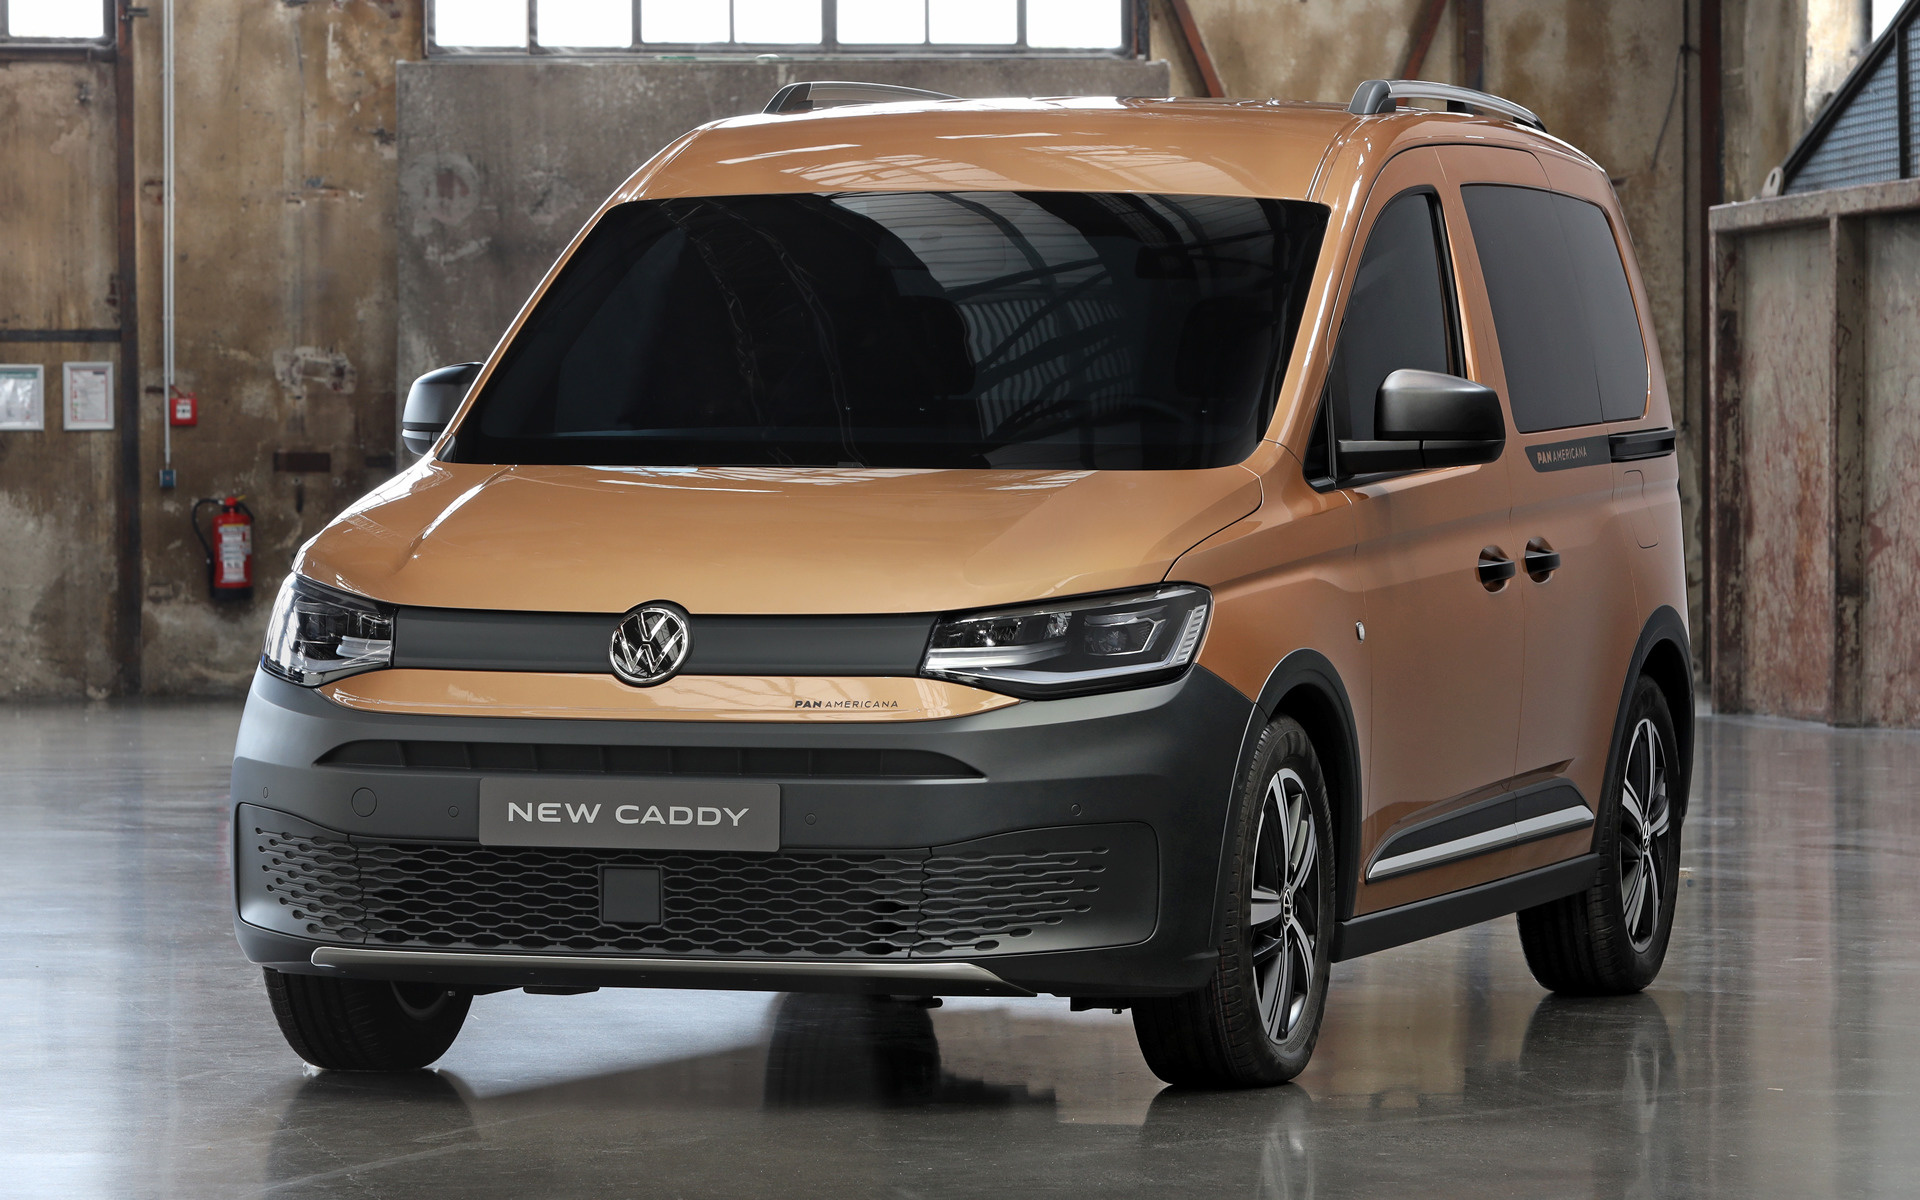 2021 Volkswagen Caddy PanAmericana - Wallpapers and HD ...